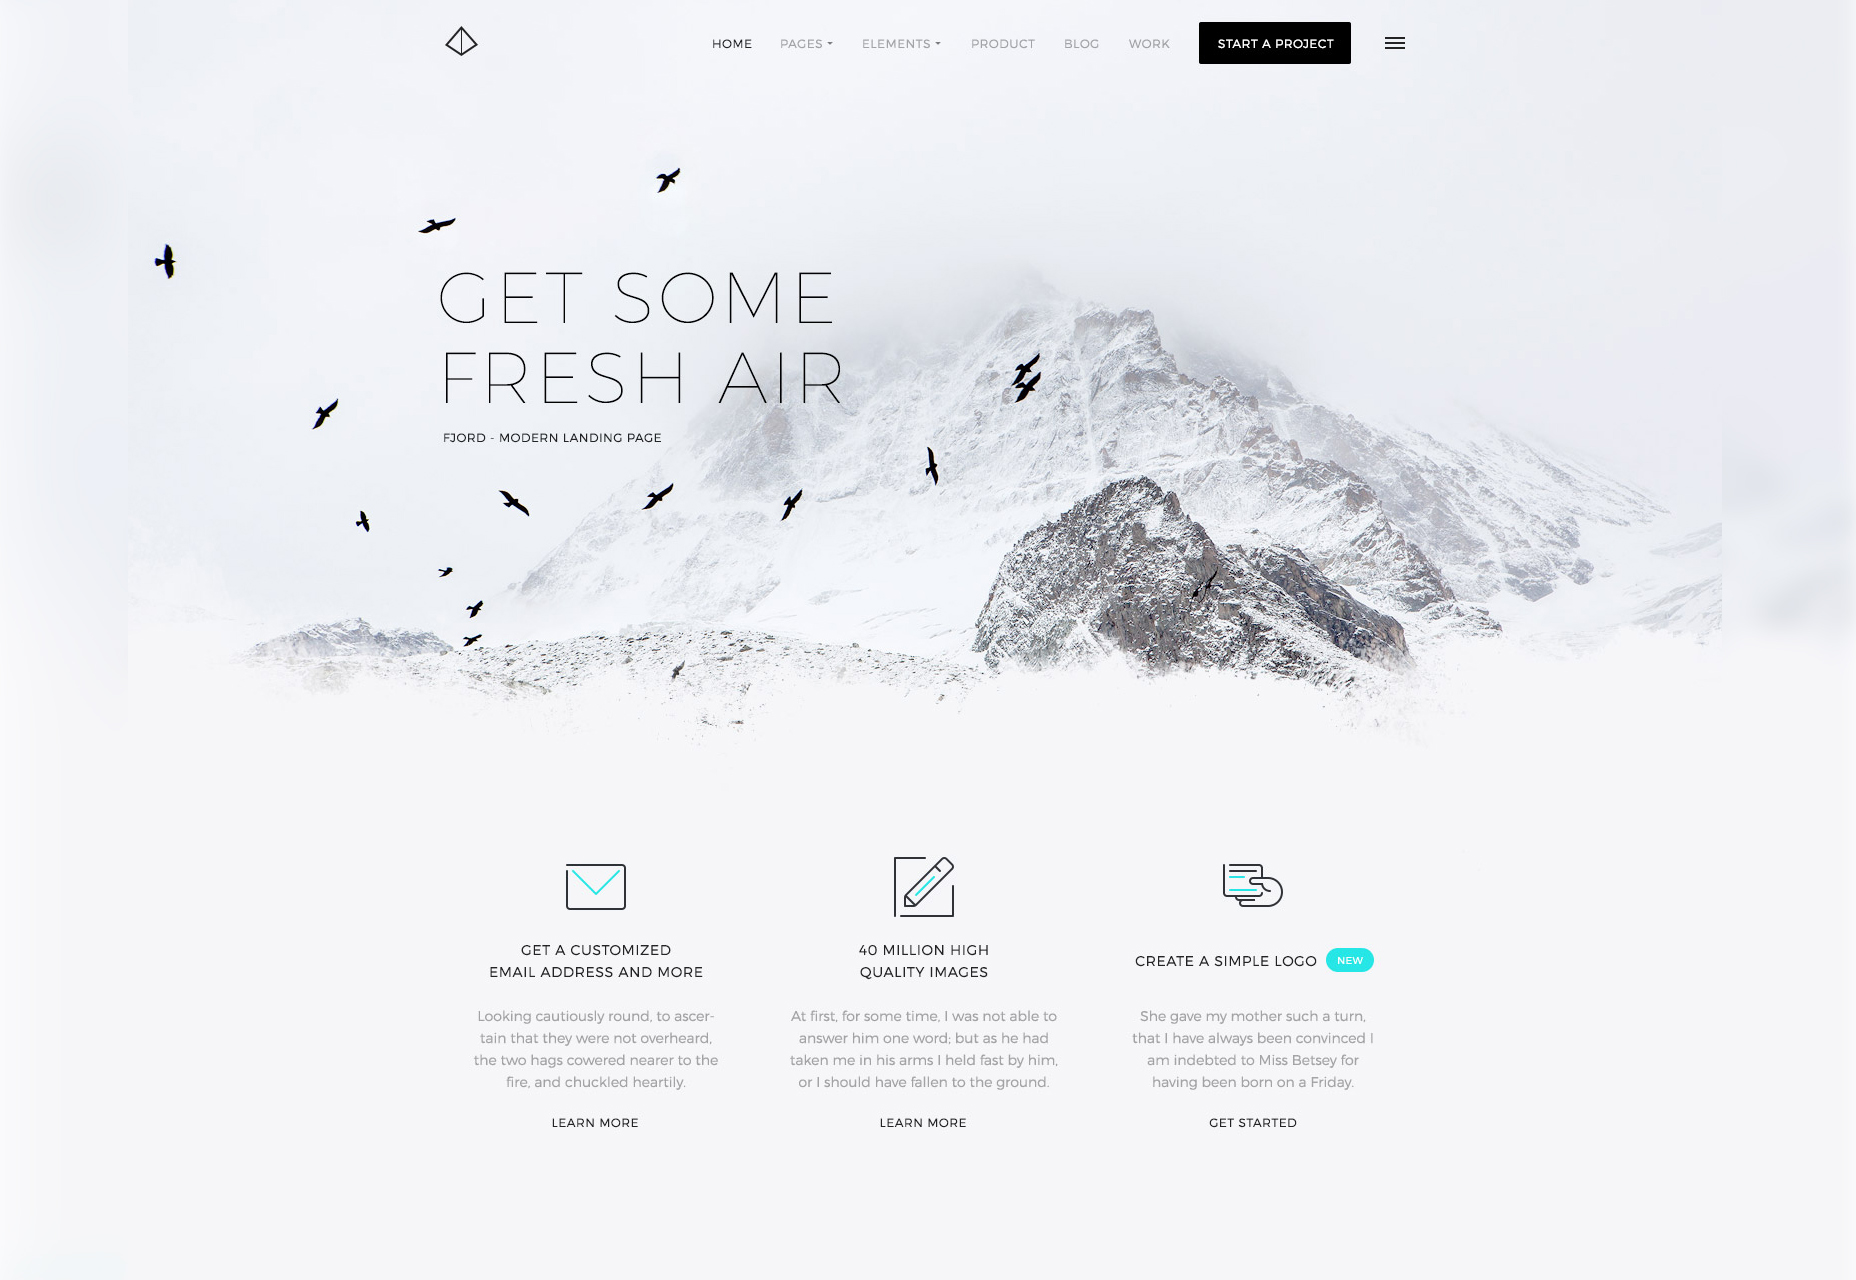 fjord-a-clean-cold-schemed-landing-page-theme